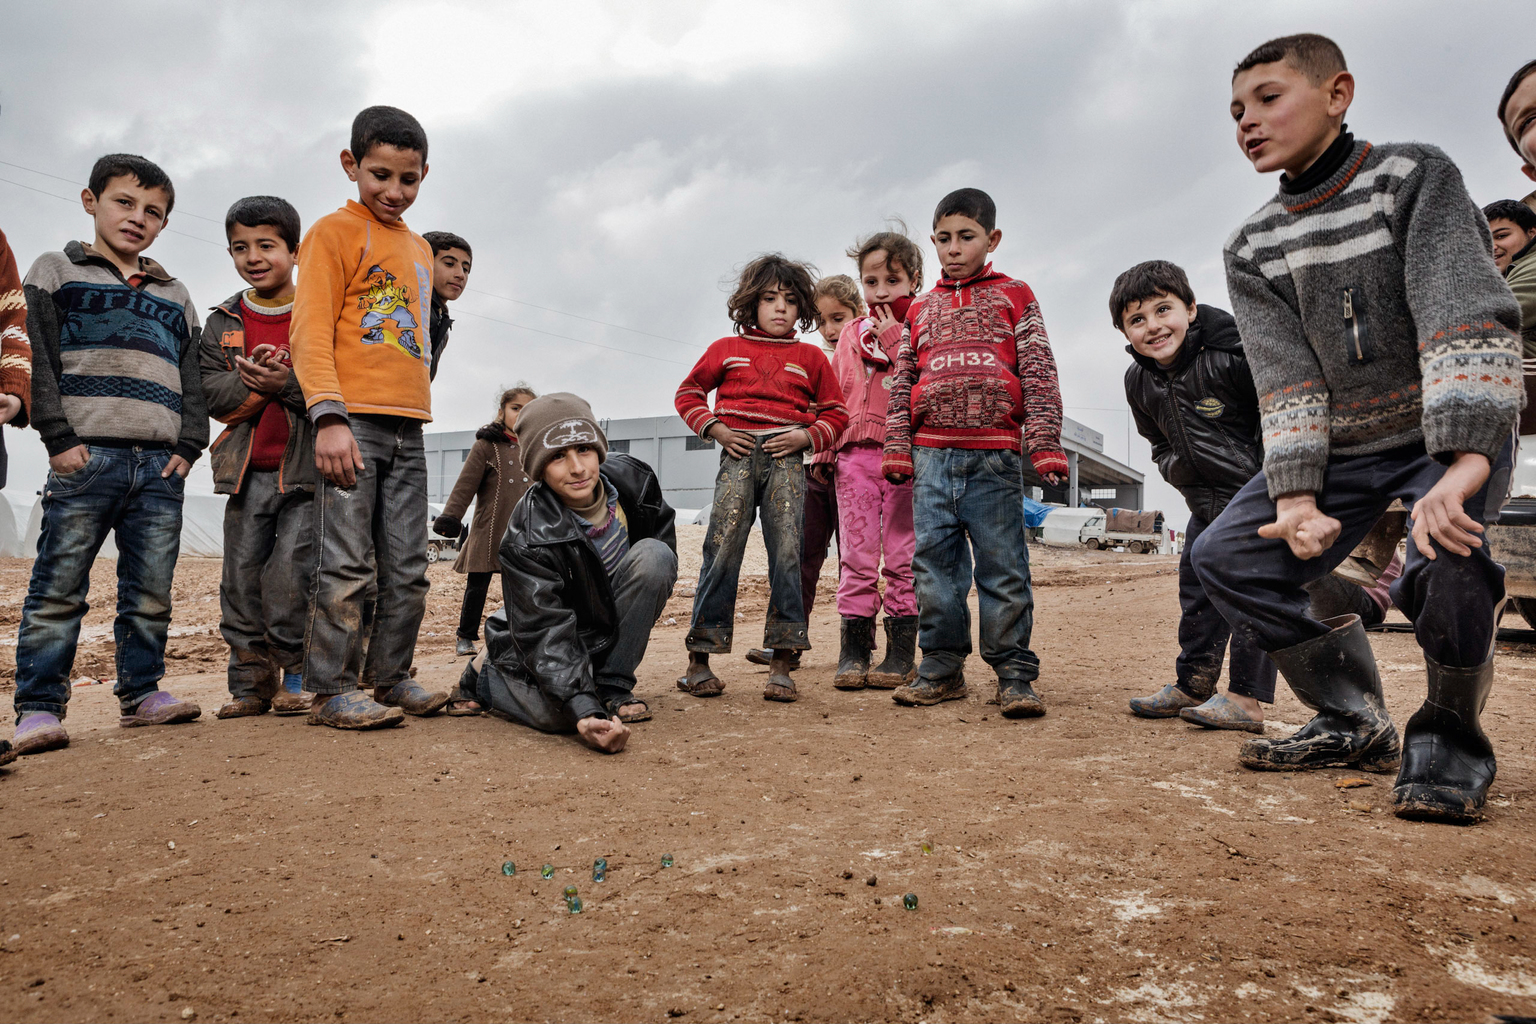 February 8, 2013, Bab al Salameh, Aleppo Province. Kids play marbles in the Bab al Salemeh refugee camp next to the Turkish border.